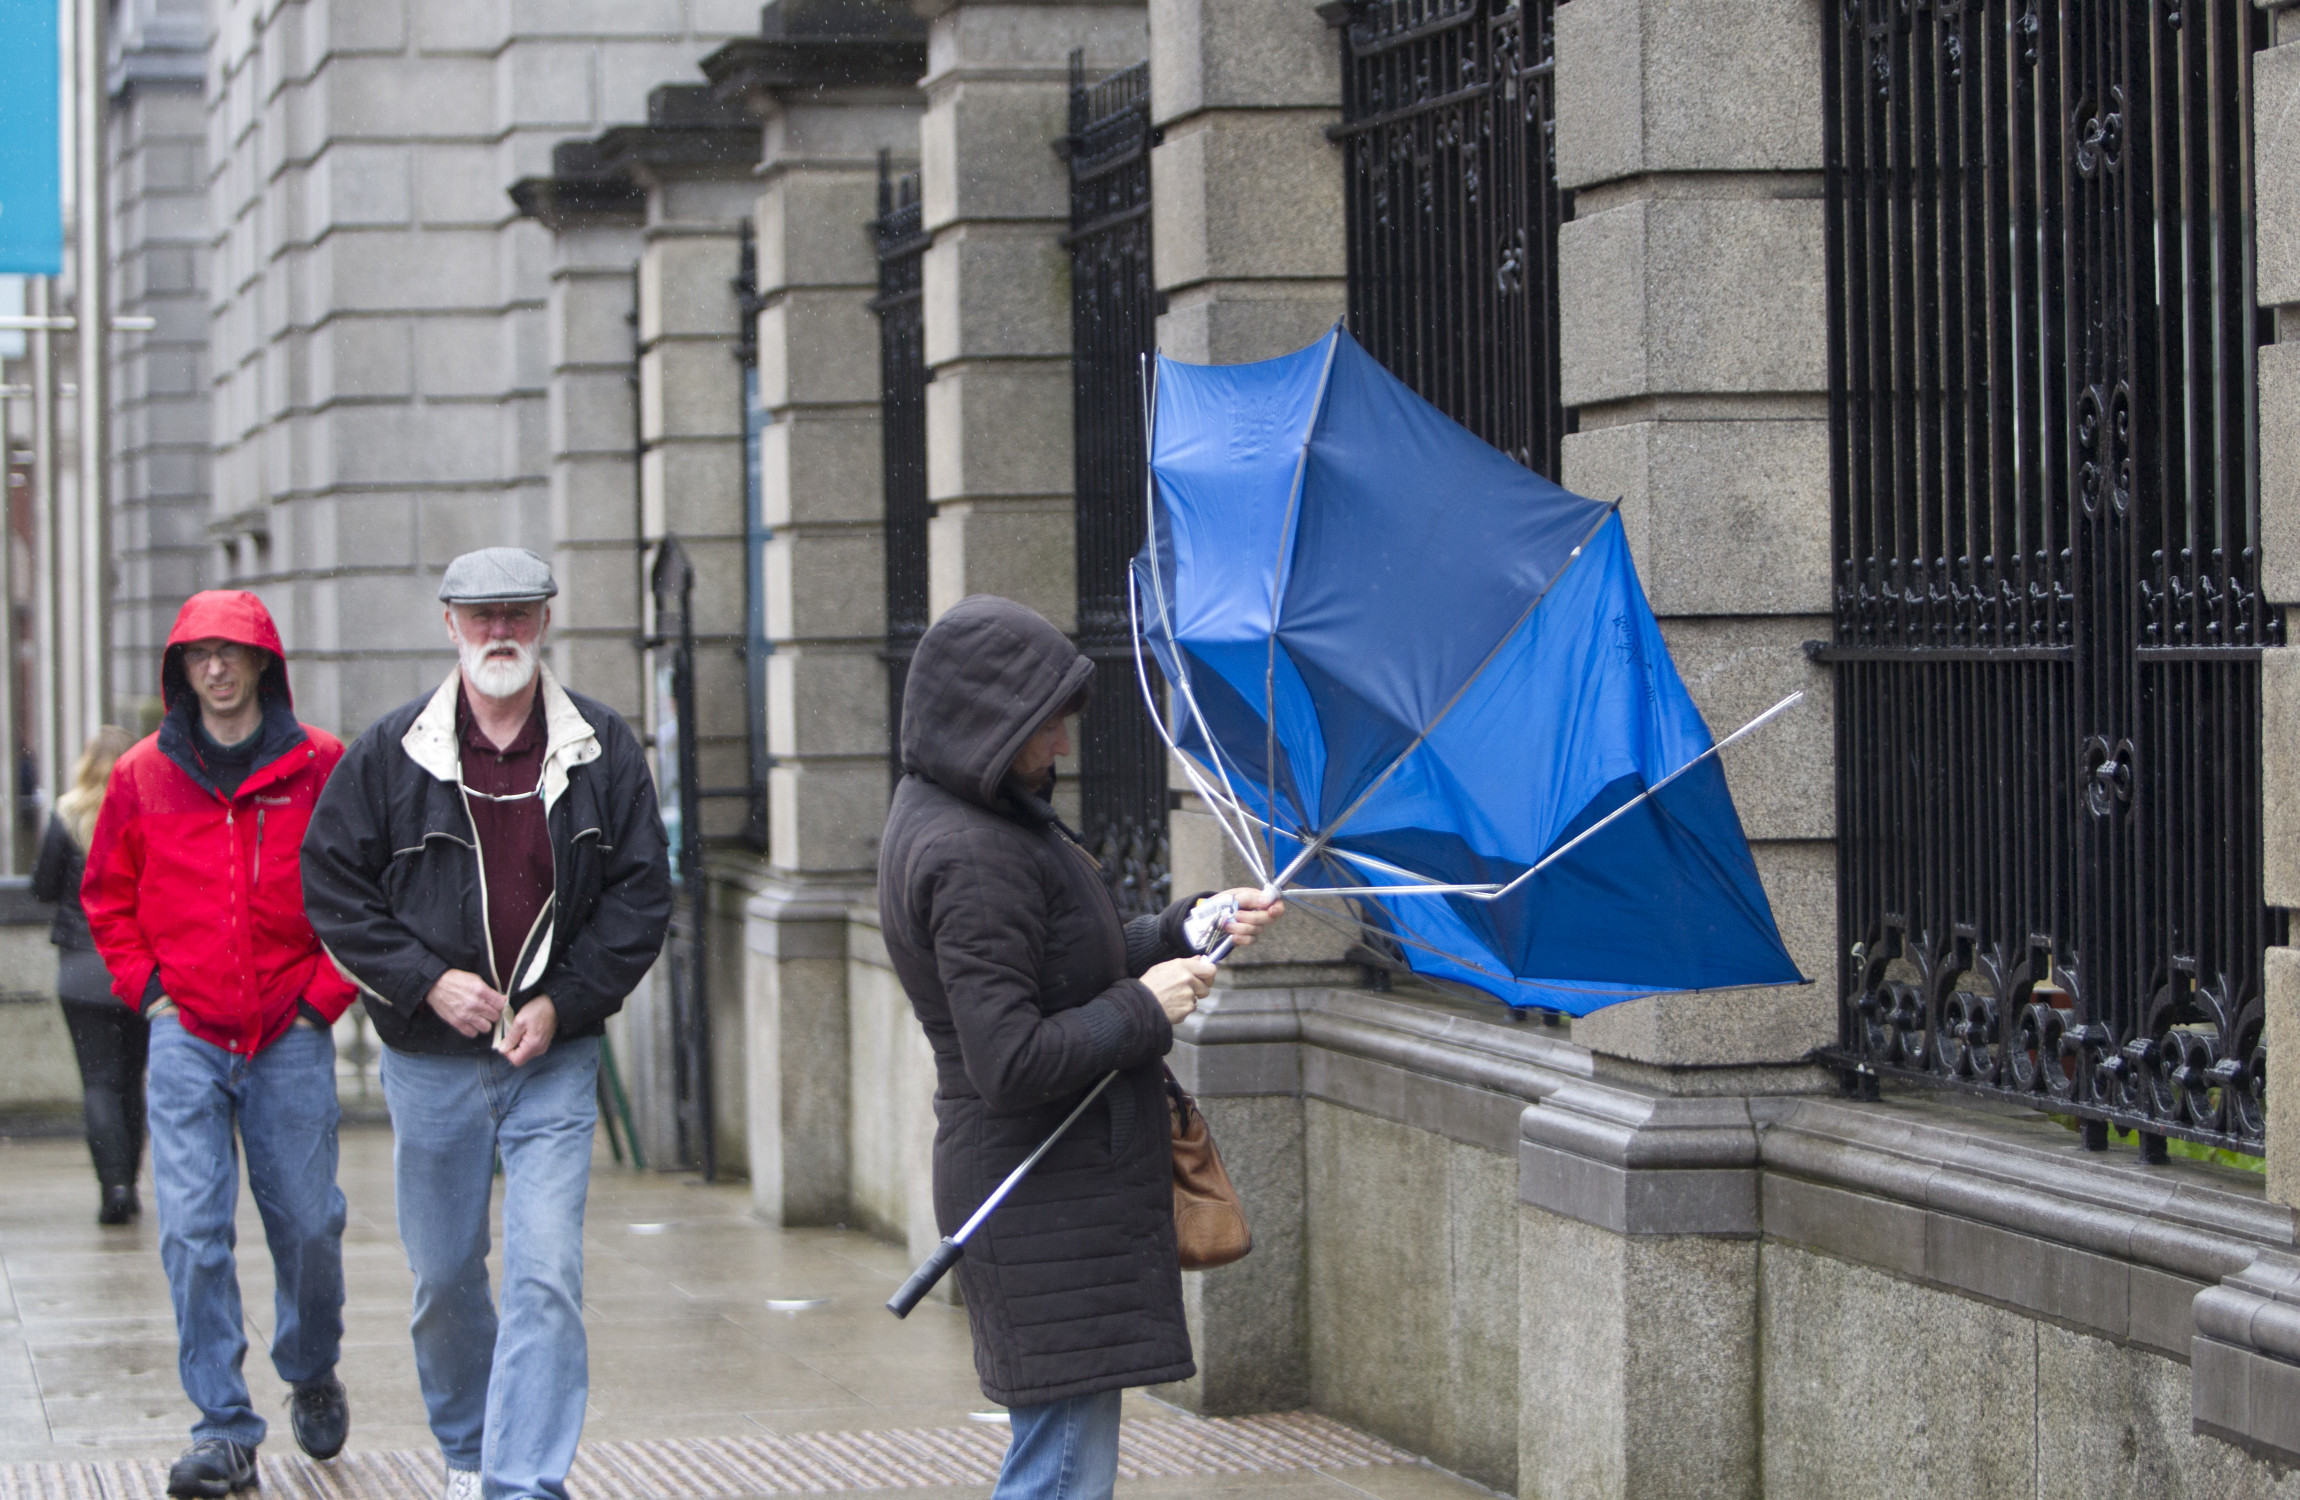 Strong winds expected in some counties as Storm Caroline impacts Ireland